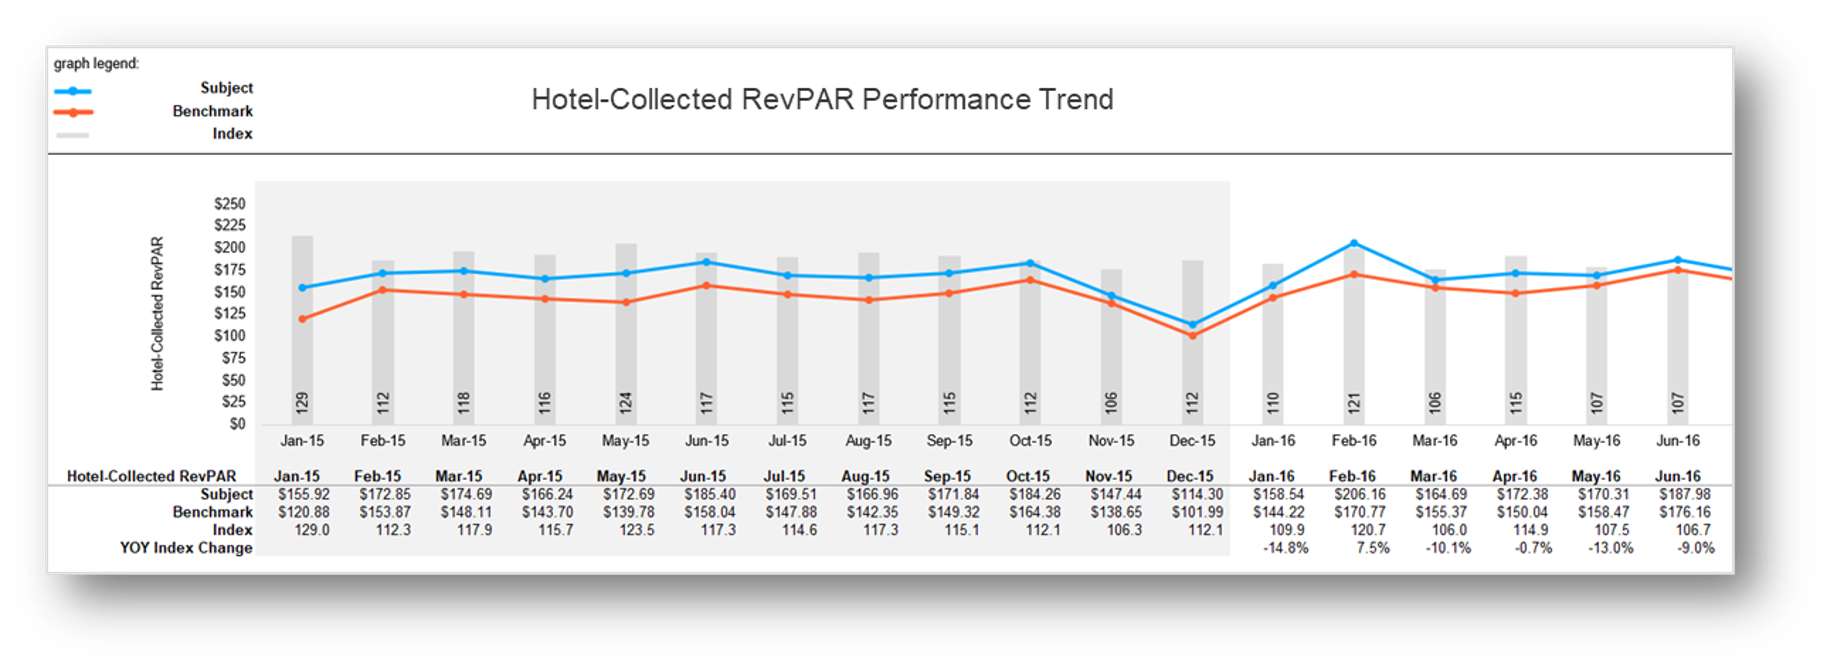 Review trends in Occupancy, ADR and RevPAR with the option to    evaluate performance based on the rates guests pay down to NET Revenue.